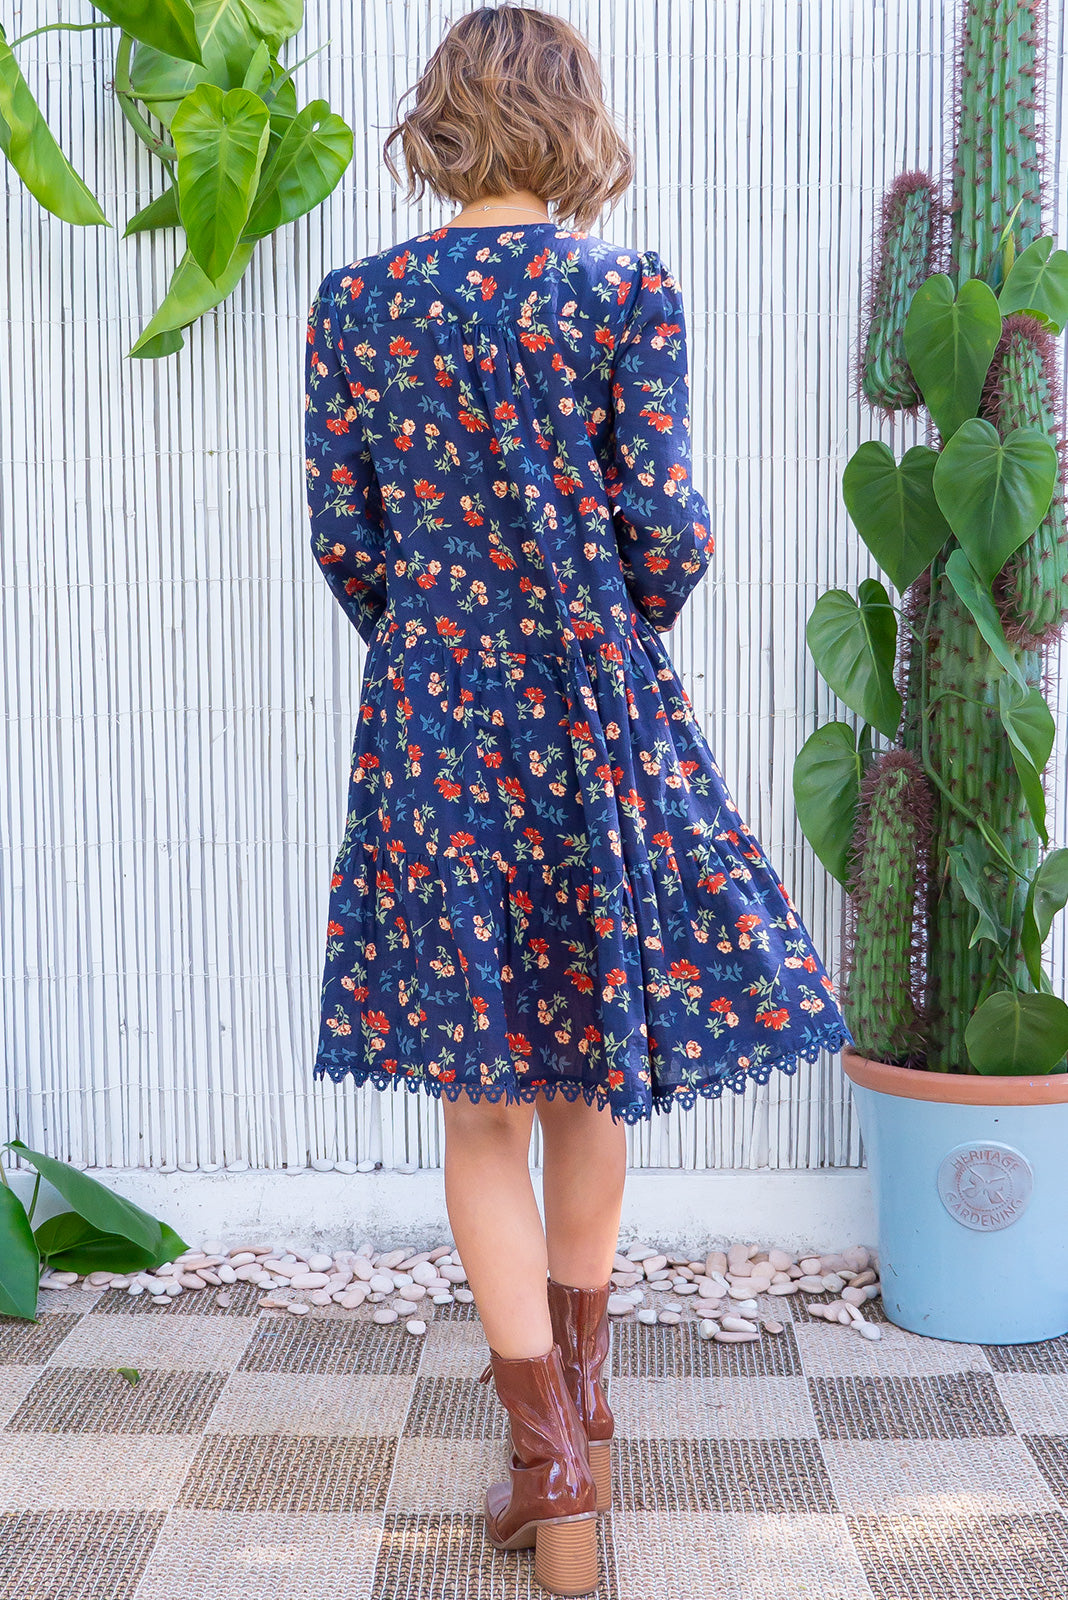 The Woodrose Navy Megs is a relaxed fit mini dress Dress featuring functional button front chest, V-neck, sleeve cuffs are elasticated, side pockets, frill hem, slightly longer at back and cotton/rayon blend in navy base with floral print.